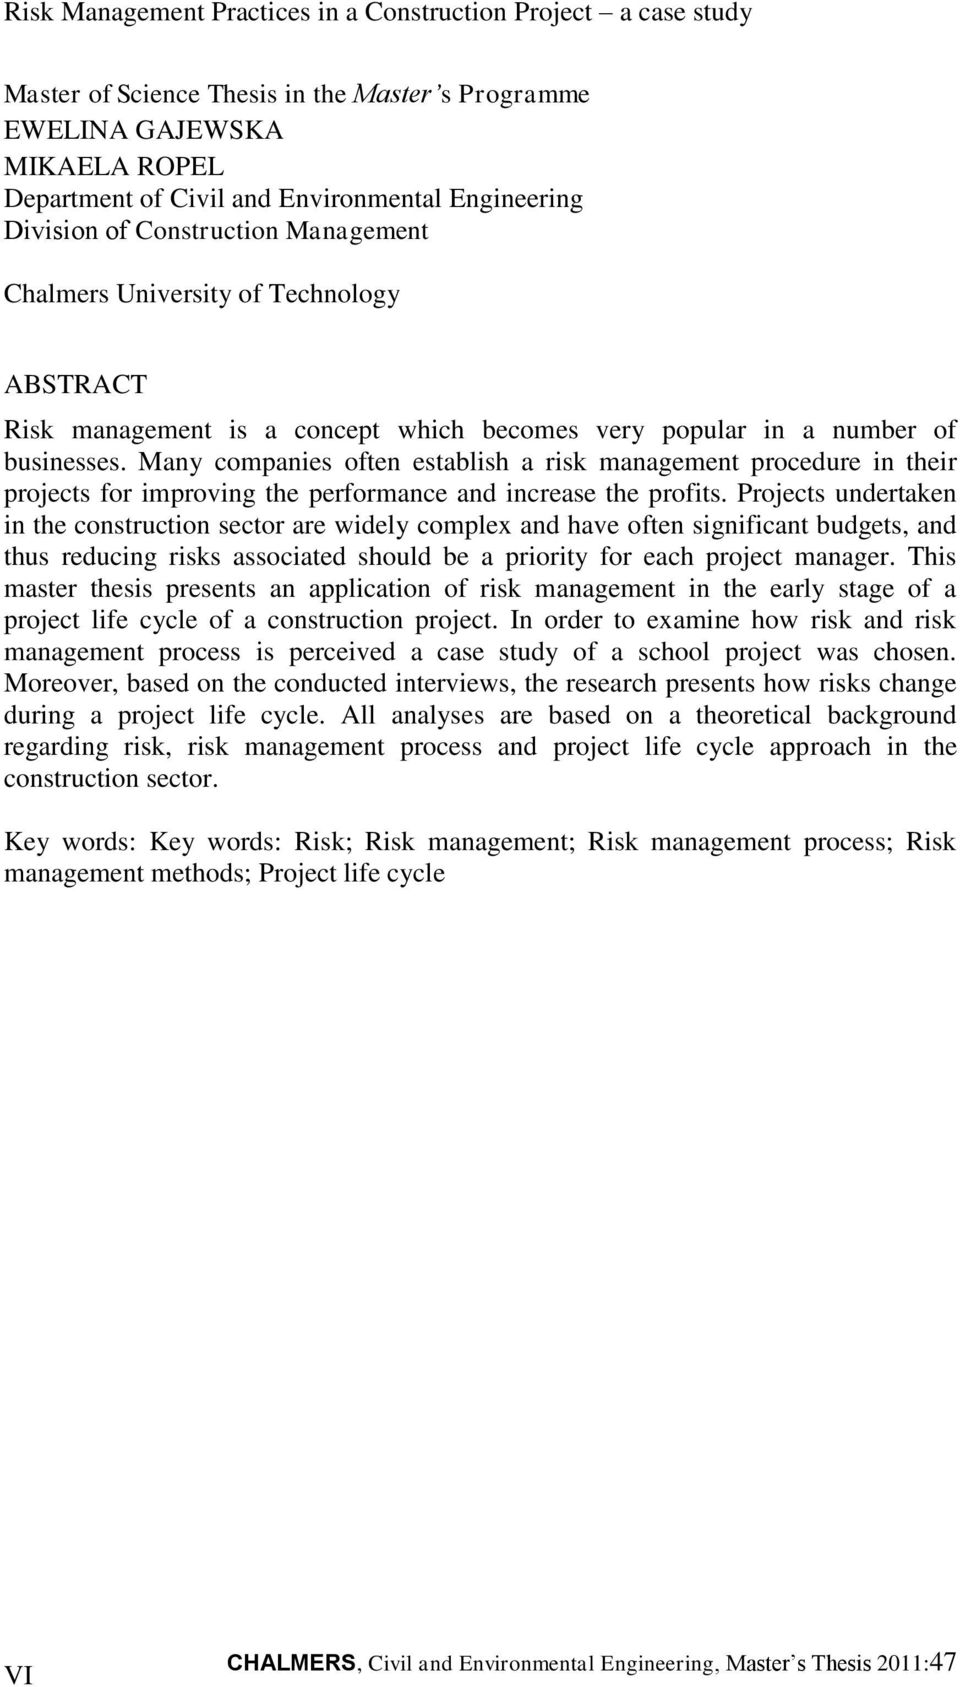 risk assessment and management in construction projects thesis Risk assessment of a construction project macro mezzo micro count ry project management indust ry enterprises organization fig 1 risk allocation structure by level in construction projects in the relevant period, risk assessment was analysed considering the uncertain environment [3 5].